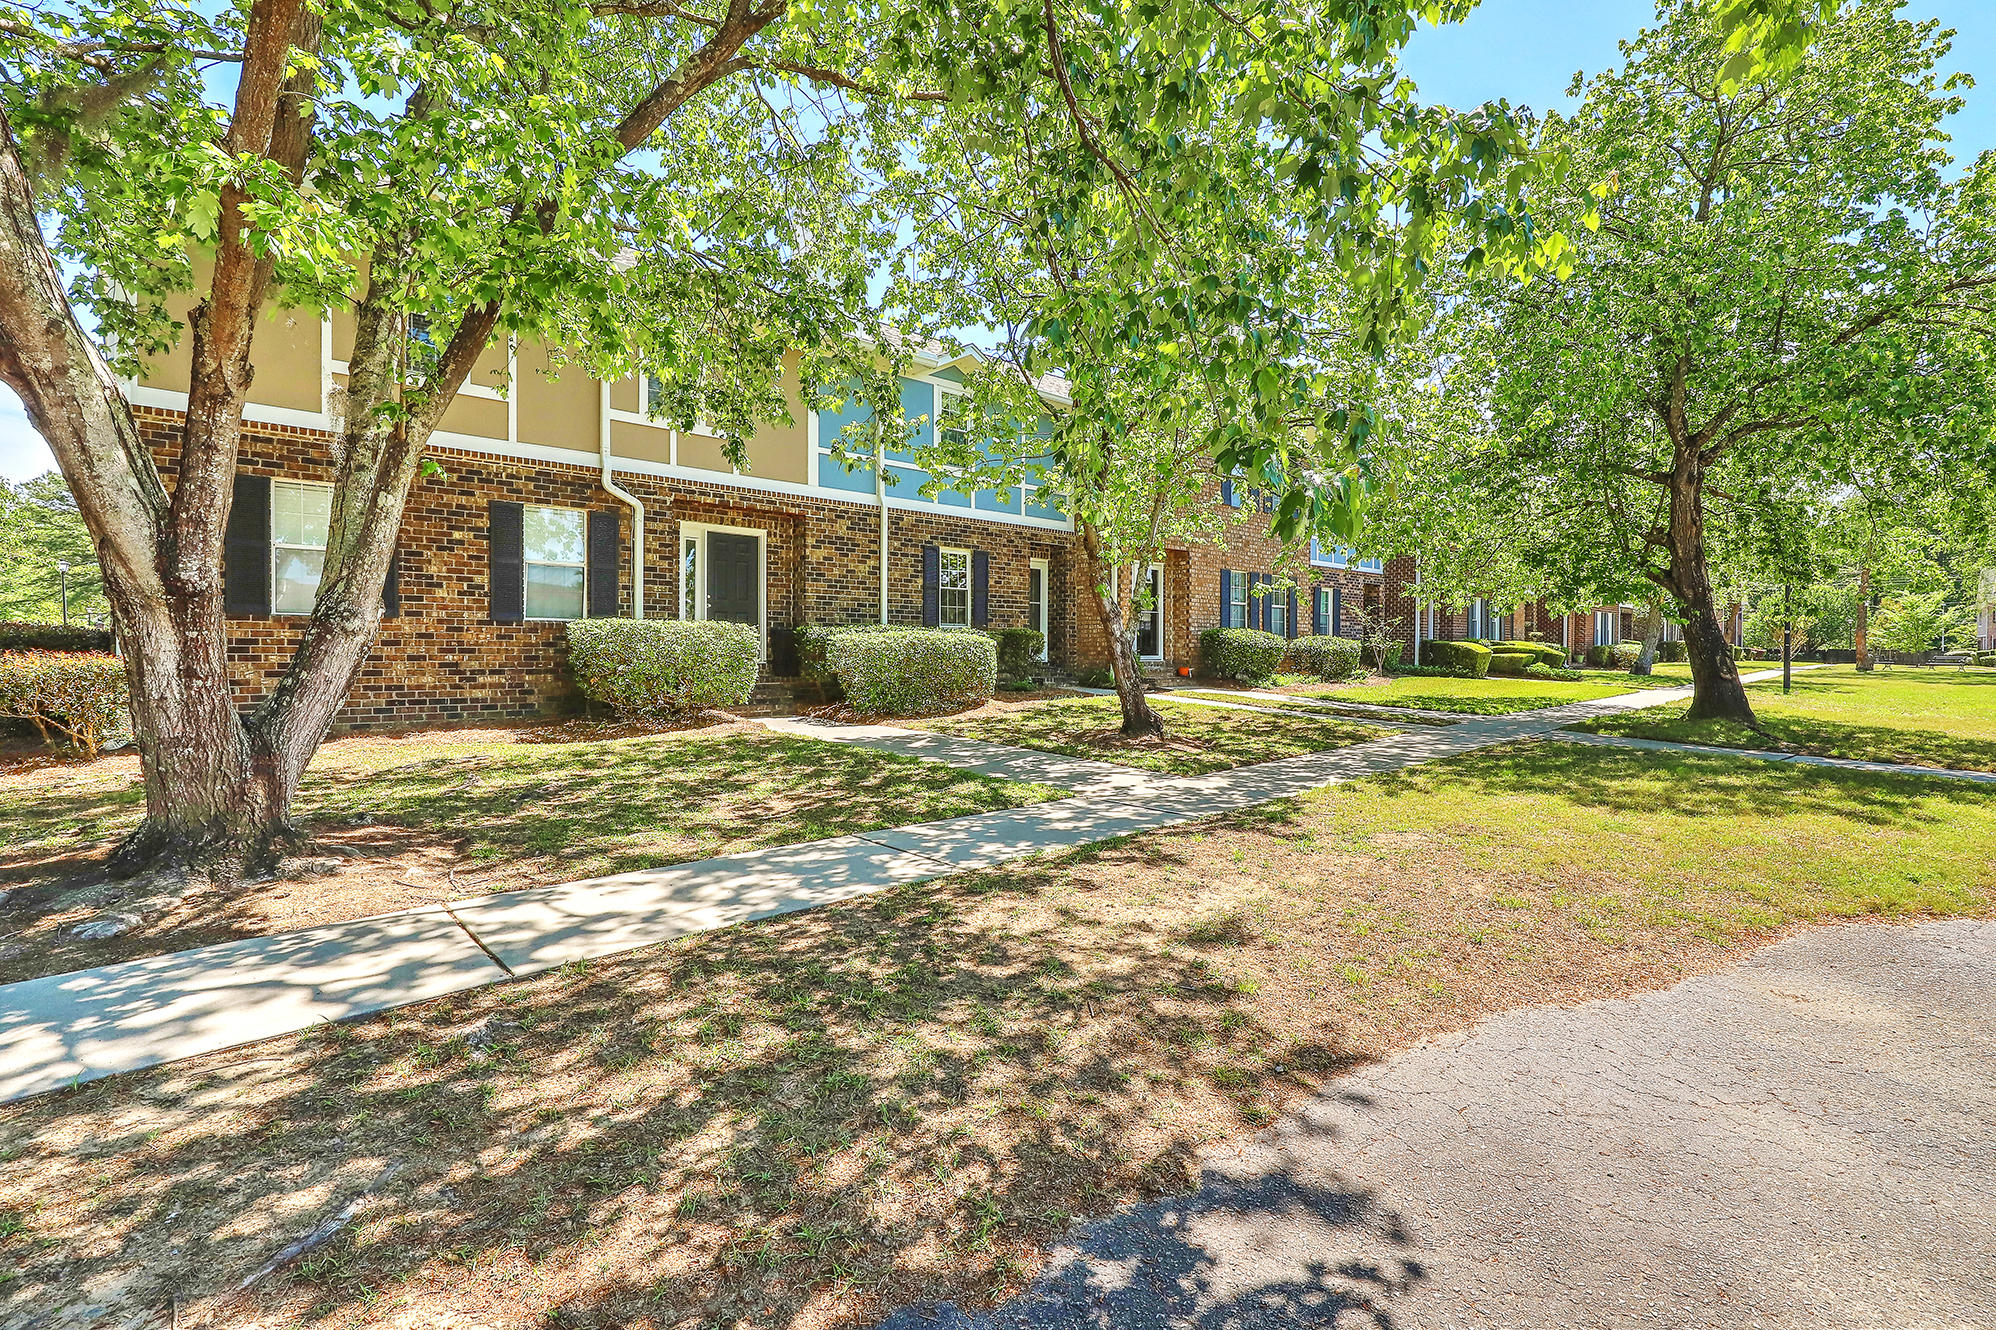 Old Towne Villas Homes For Sale - 2921 Cathedral, Charleston, SC - 35